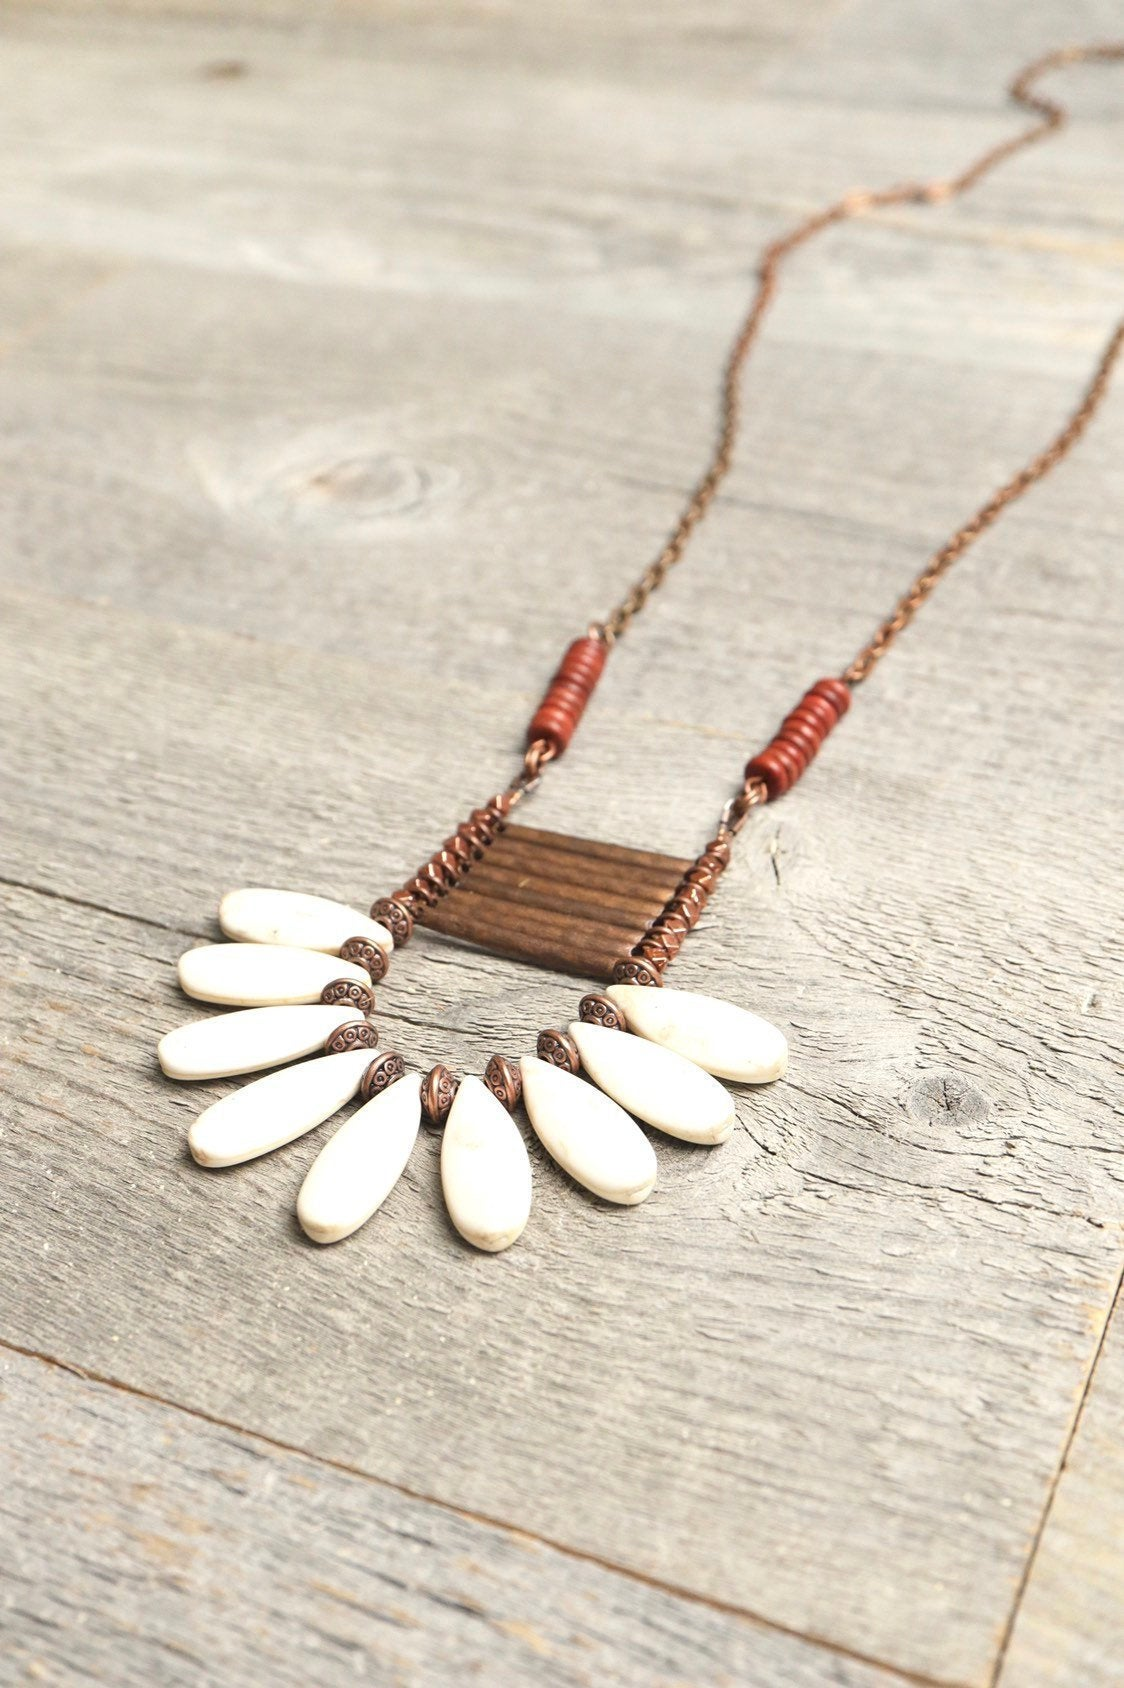 White Teardrop Stone Boho Gypsy Tribal Ethnic Necklace